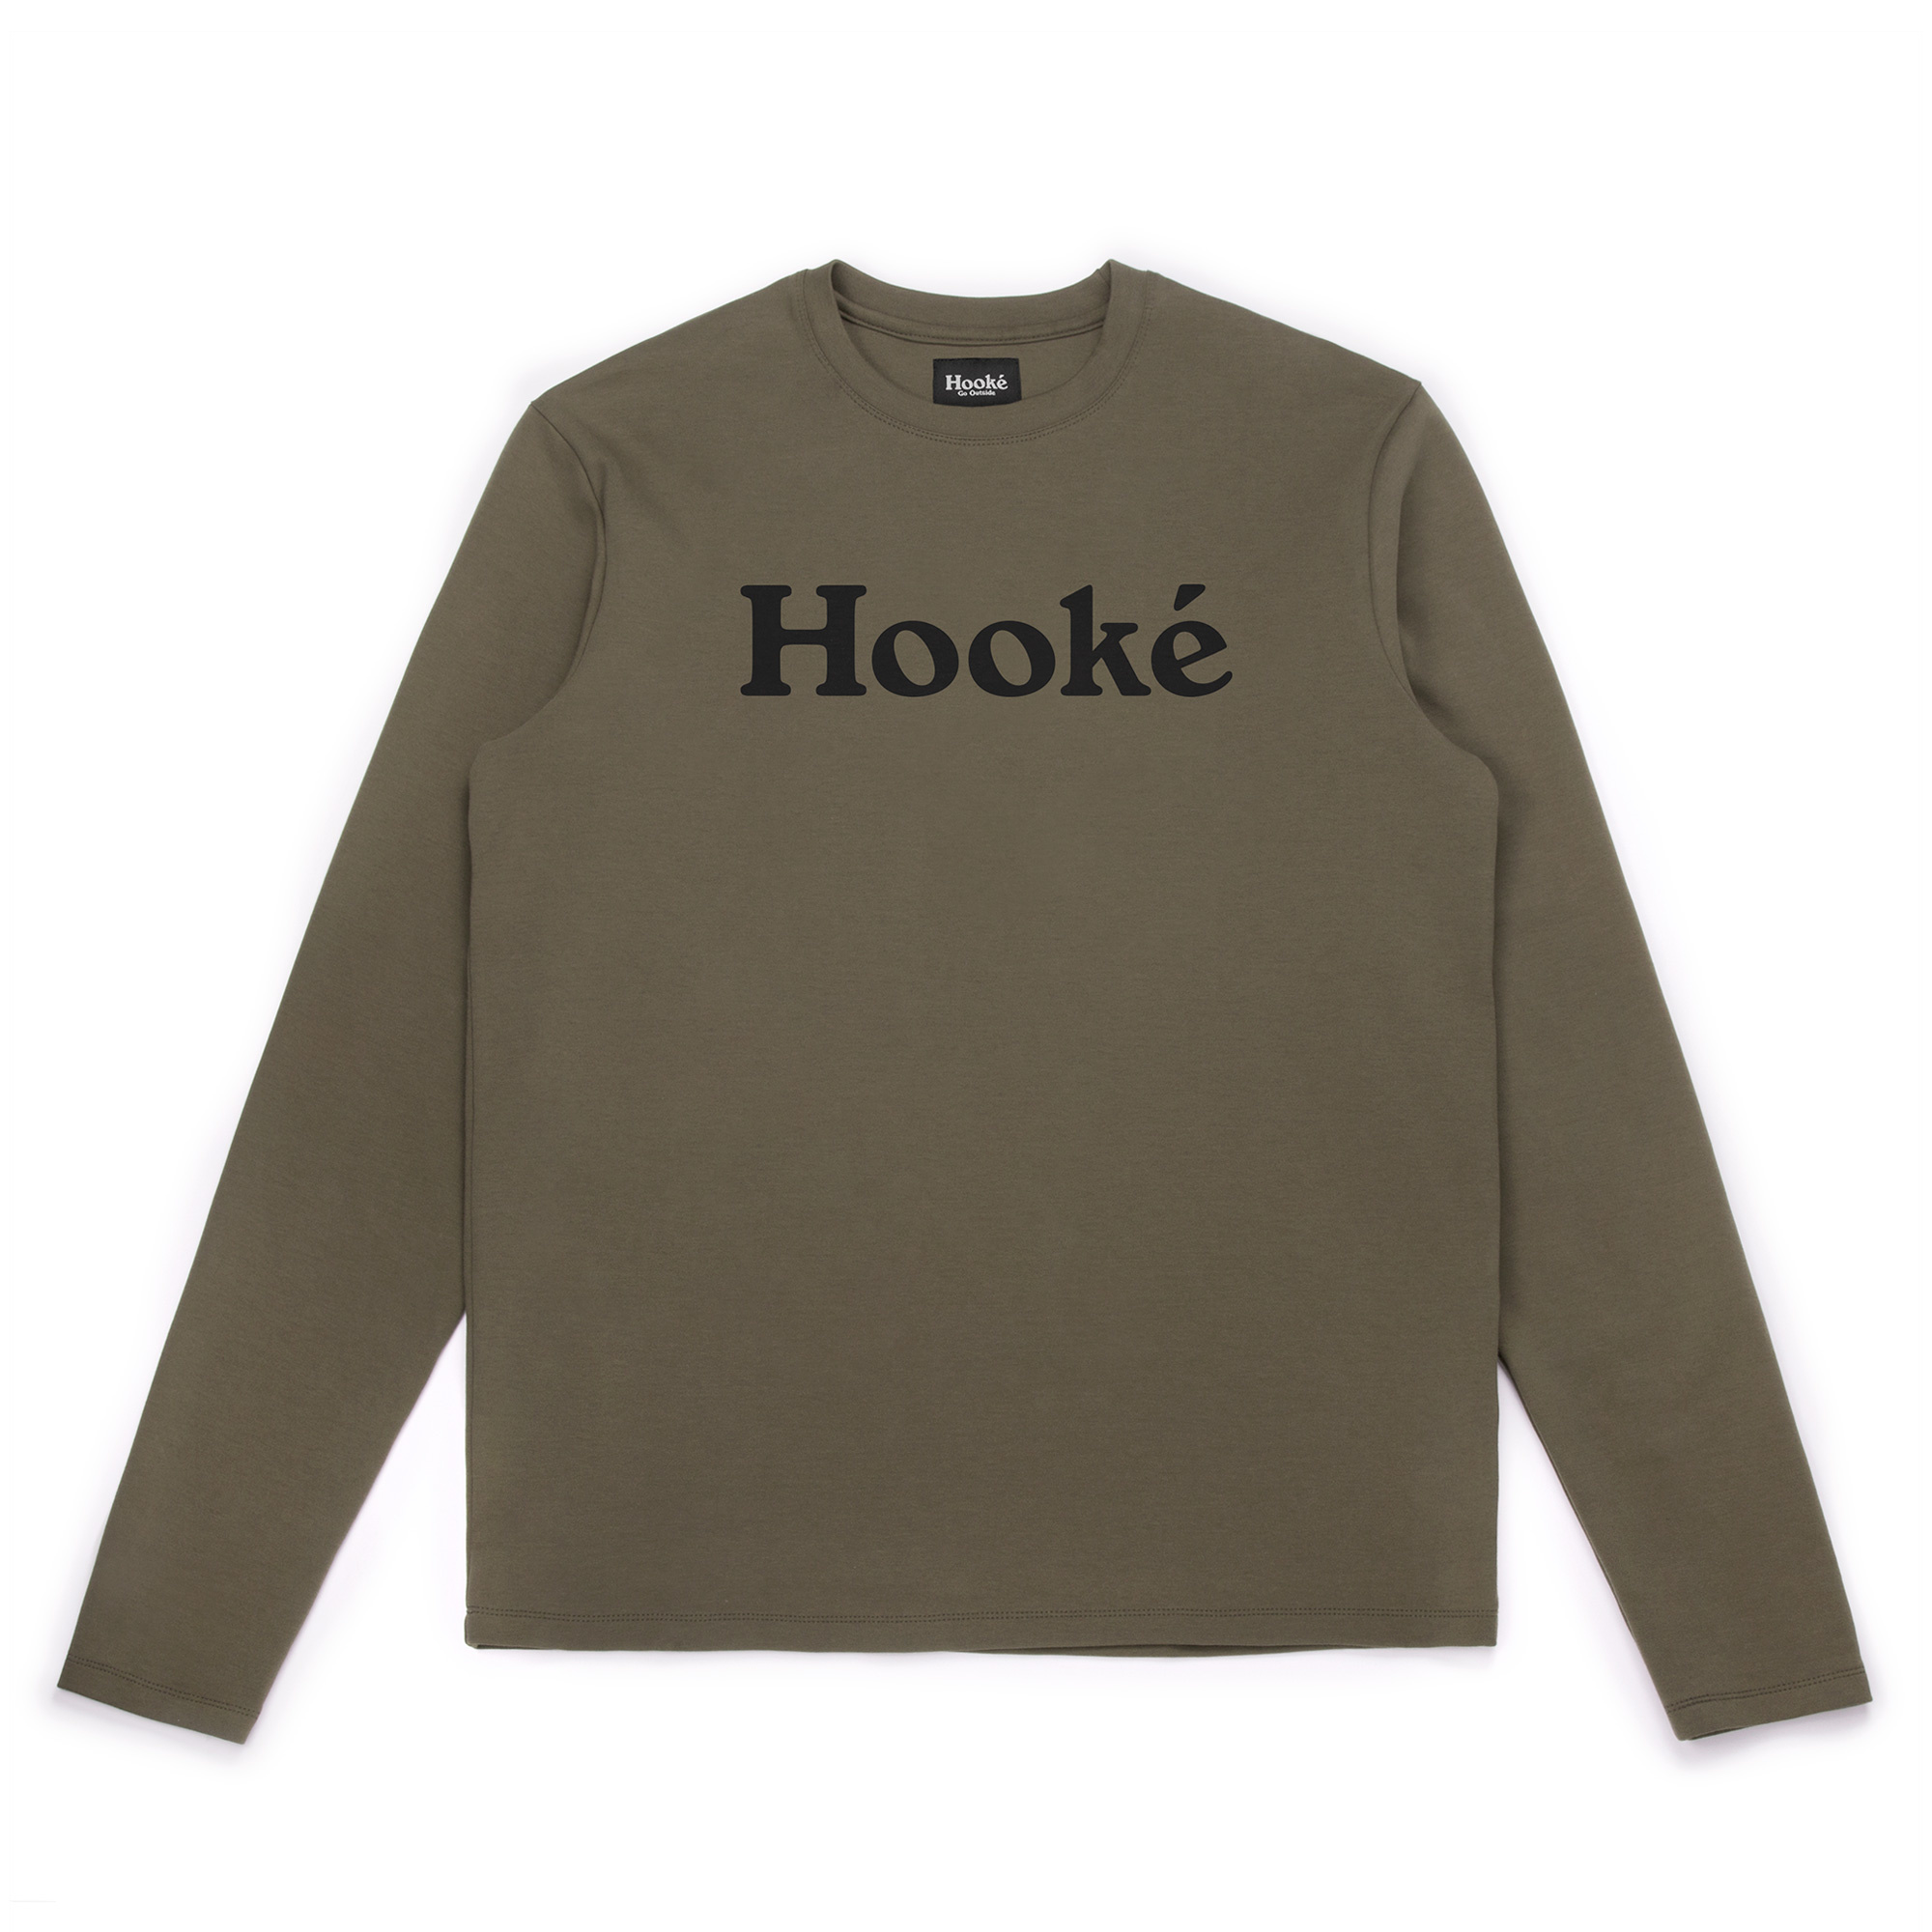 Hooké Original Long Sleeve Tee Olive